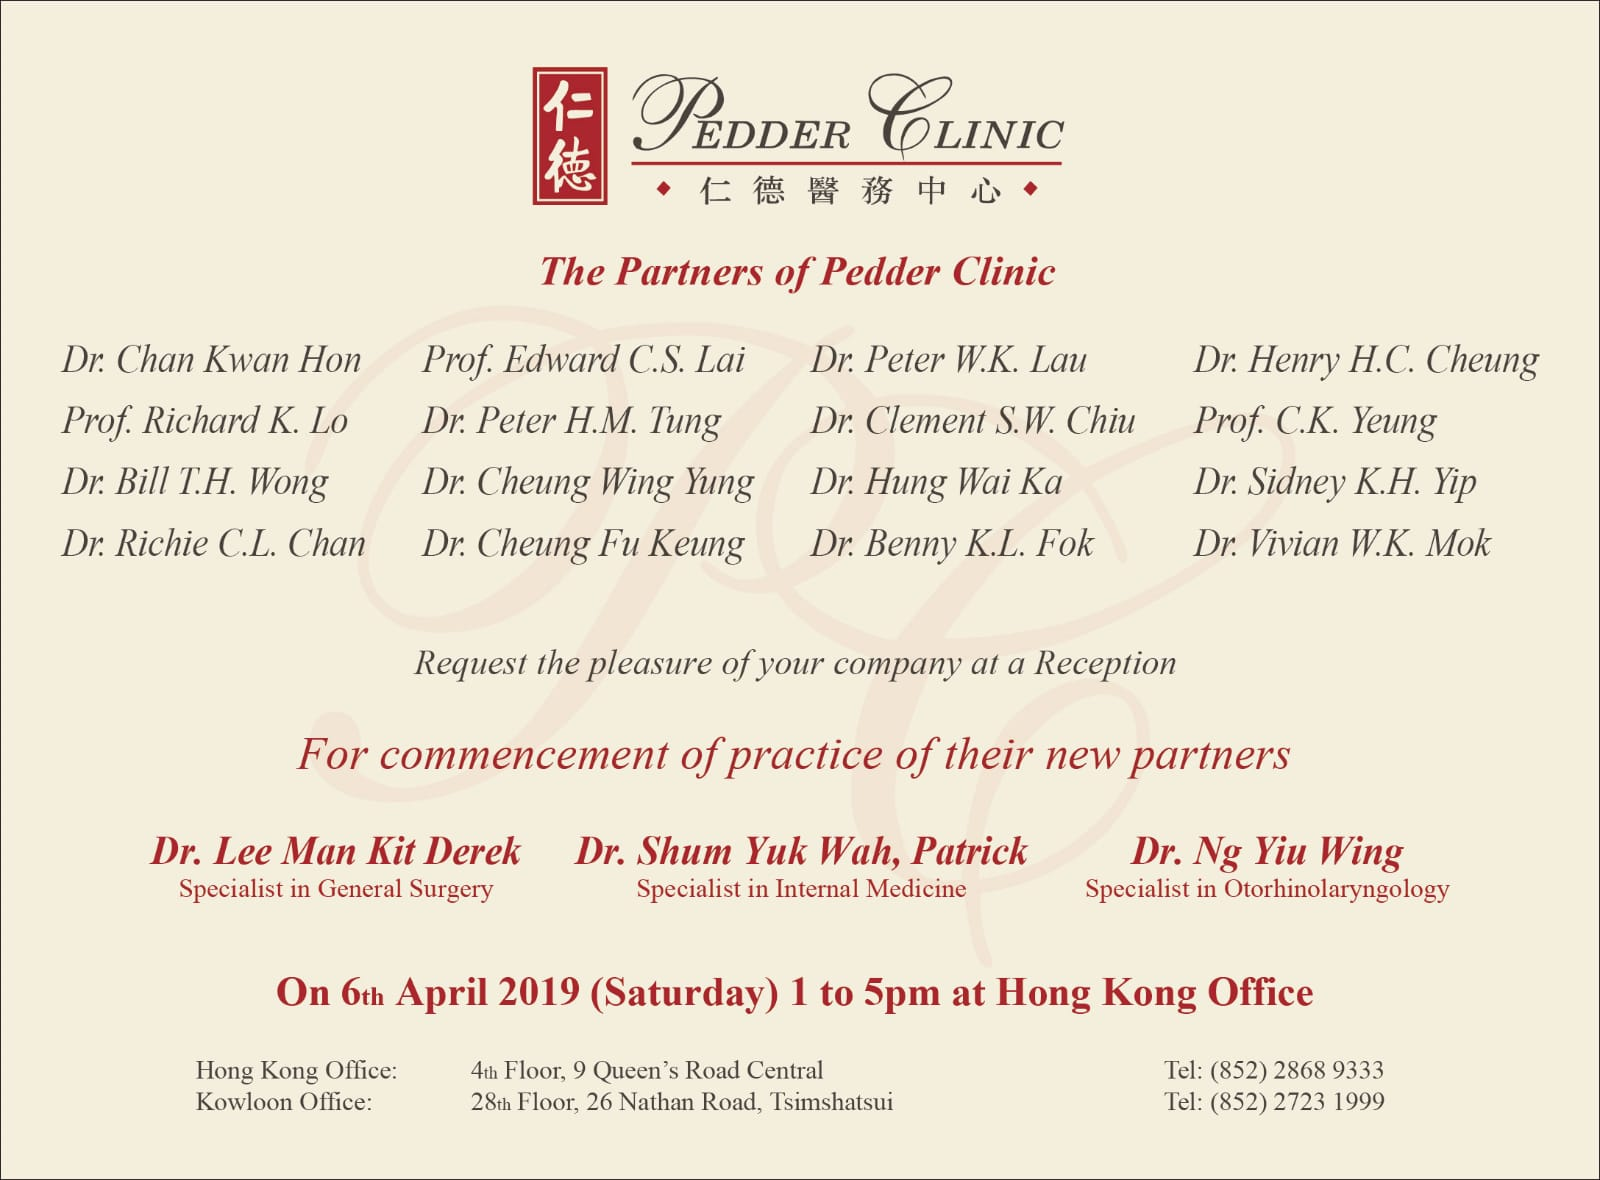 https://pedderclinic.hk/wp-content/uploads/invitationCardEnglish.jpg